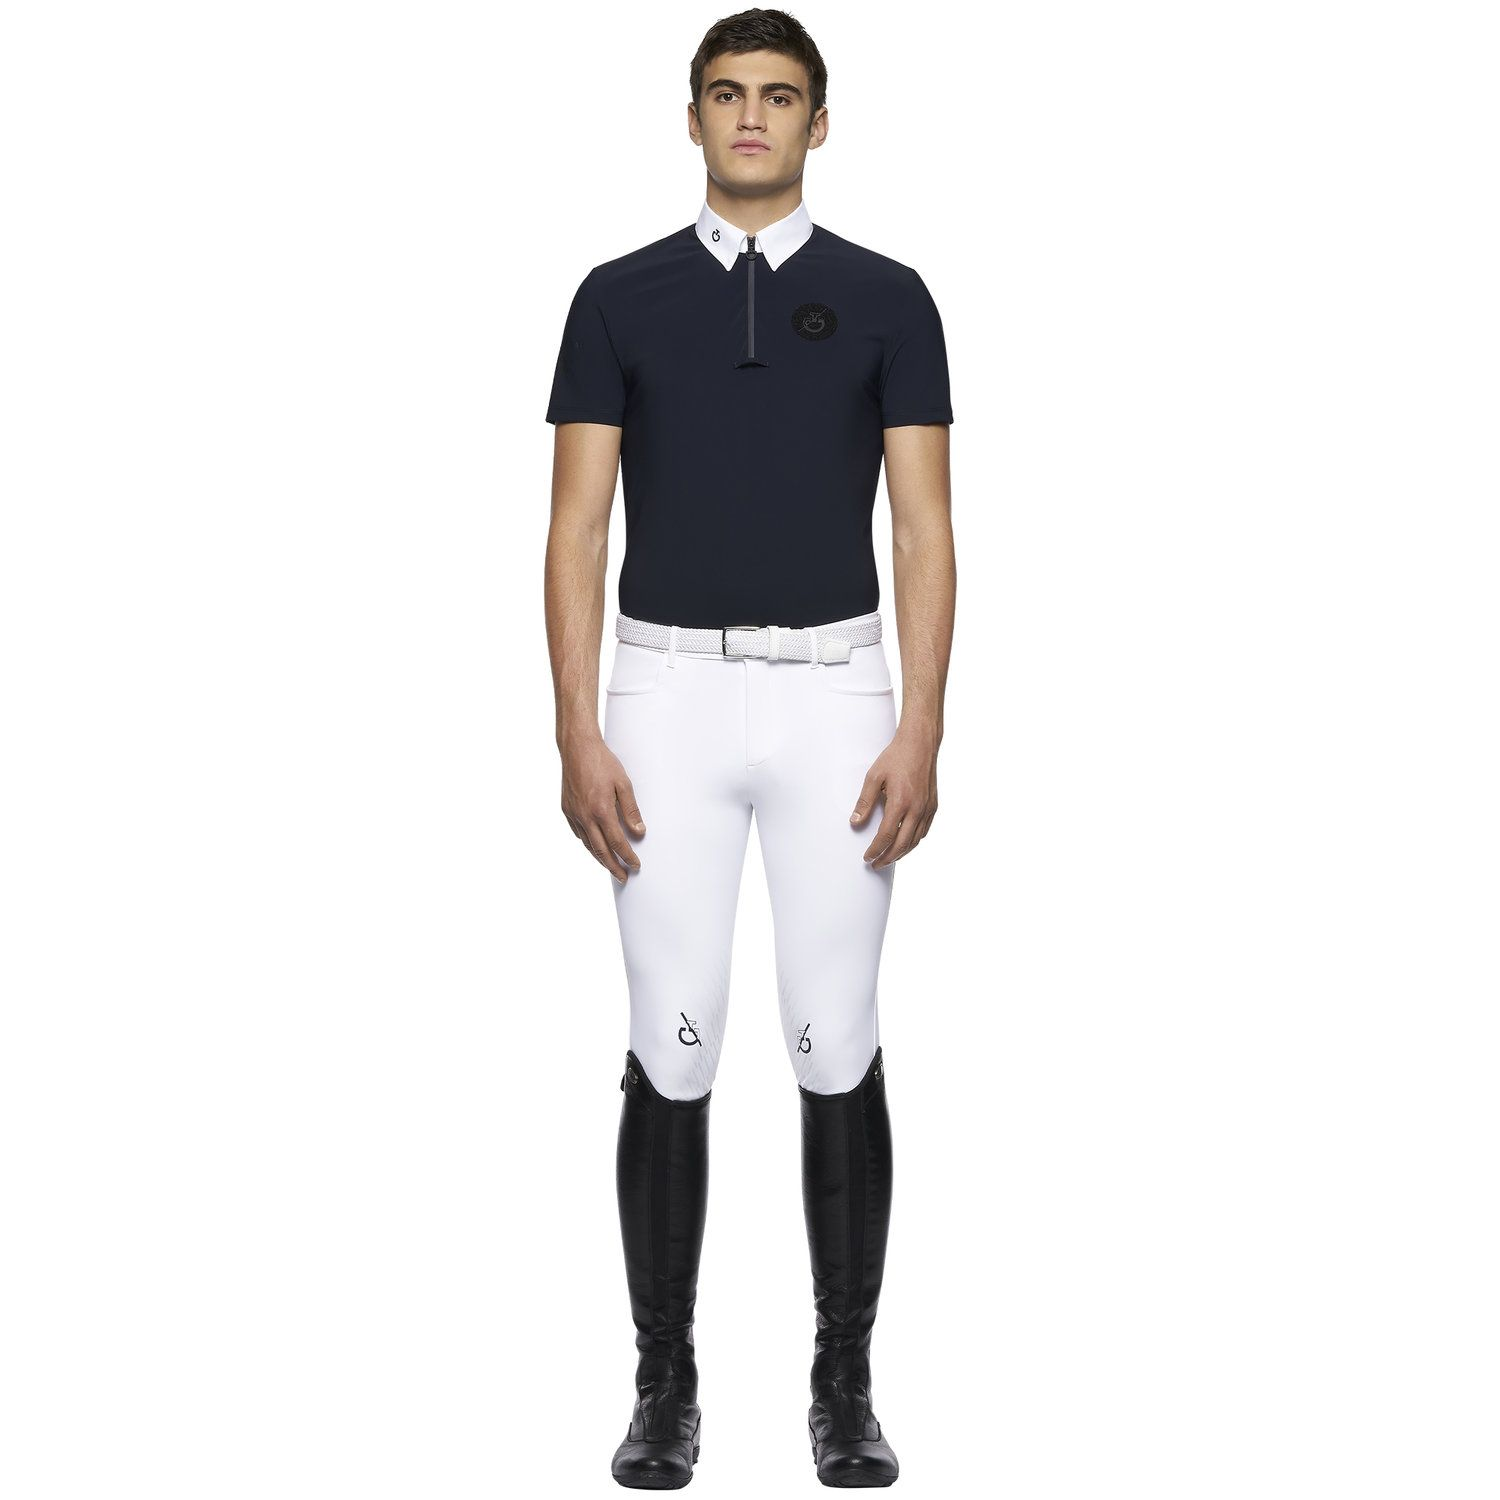 TEAM men's short sleeve competition polo